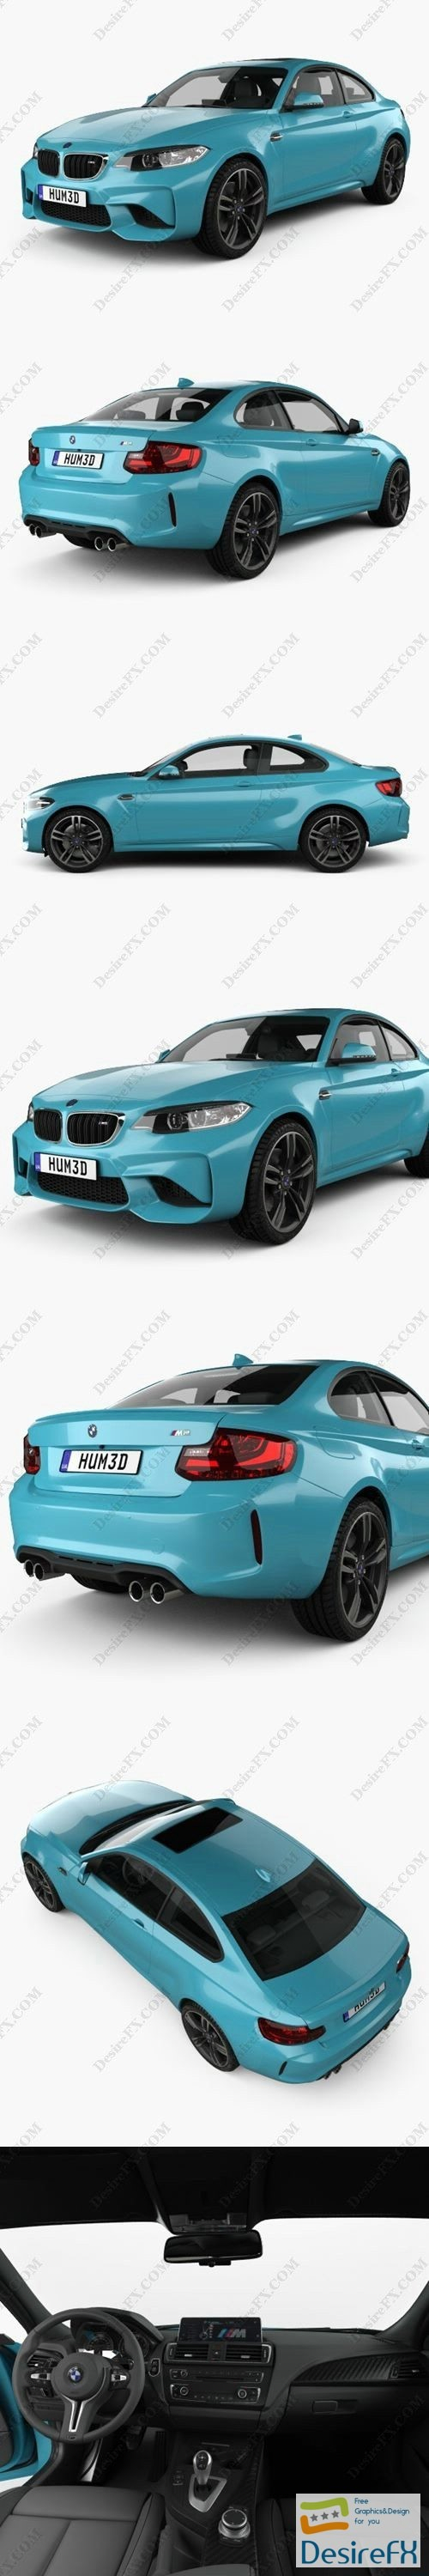 3d-models - BMW M2 F87 coupe with HQ interior 2015 3D Model